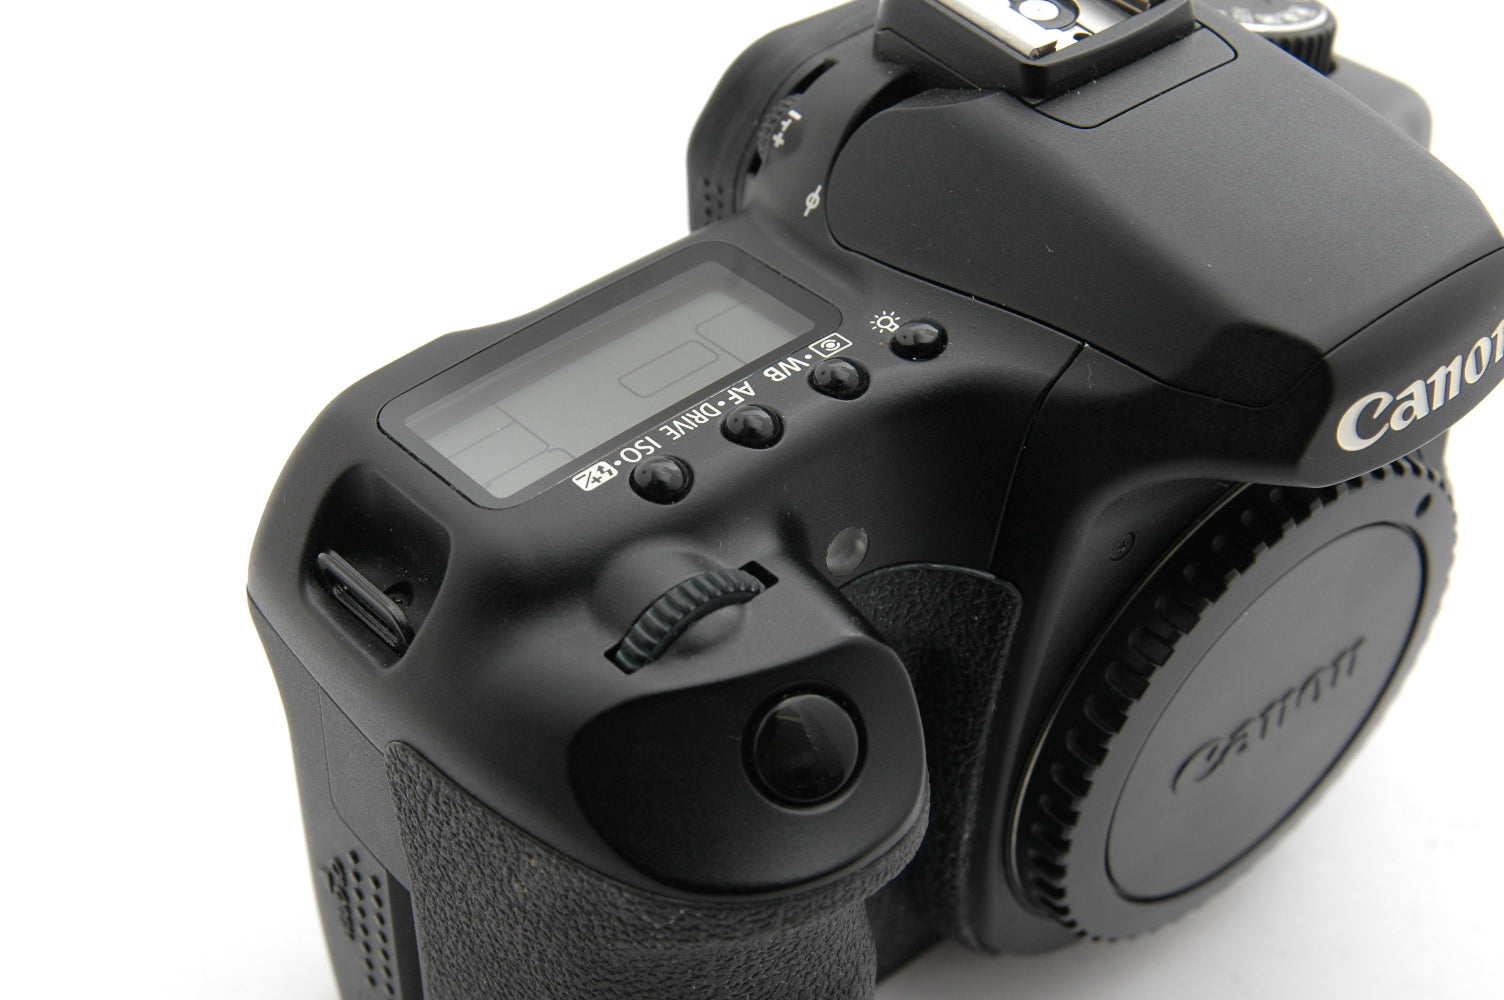 Used Canon EOS 40D Camera Body - Black